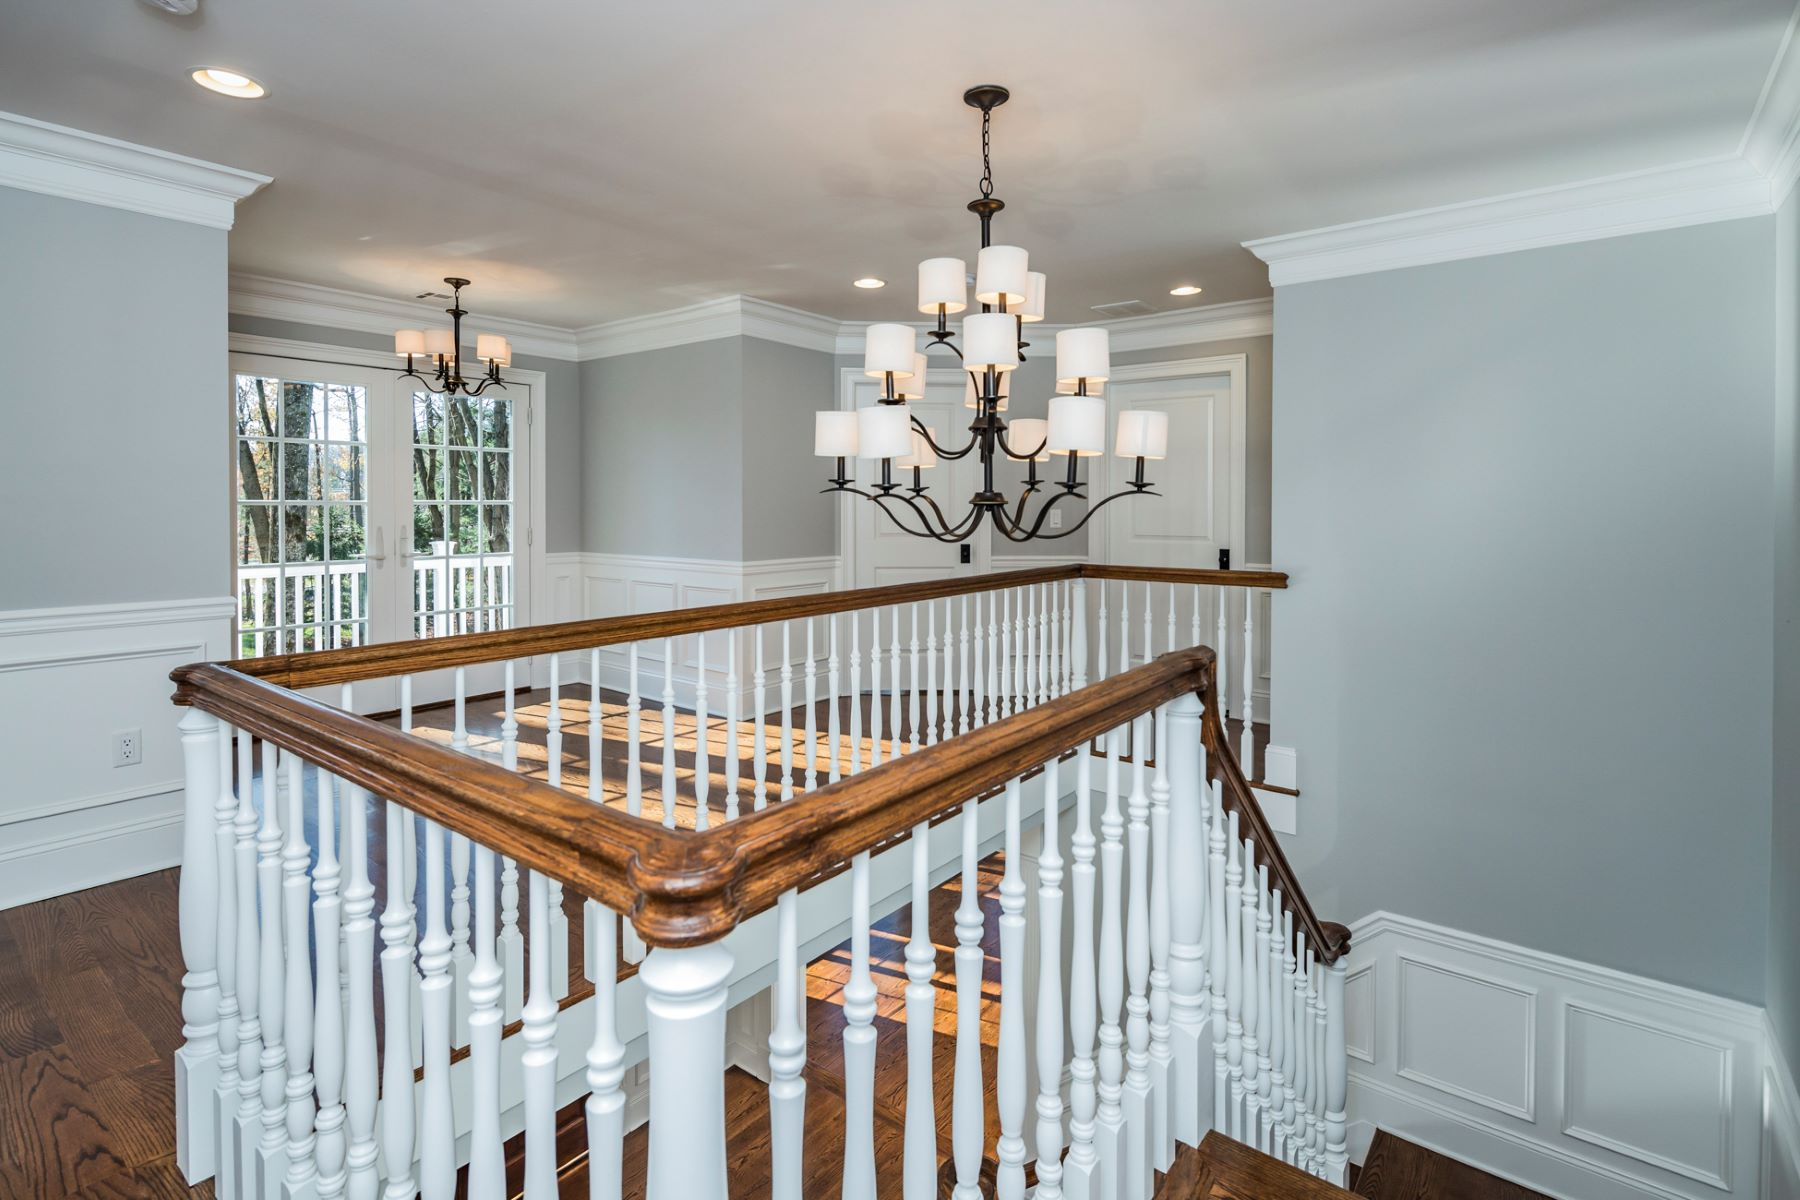 Additional photo for property listing at Dramatically Remodeled To The Highest Standards 1163 Great Road, Princeton, New Jersey 08540 United States